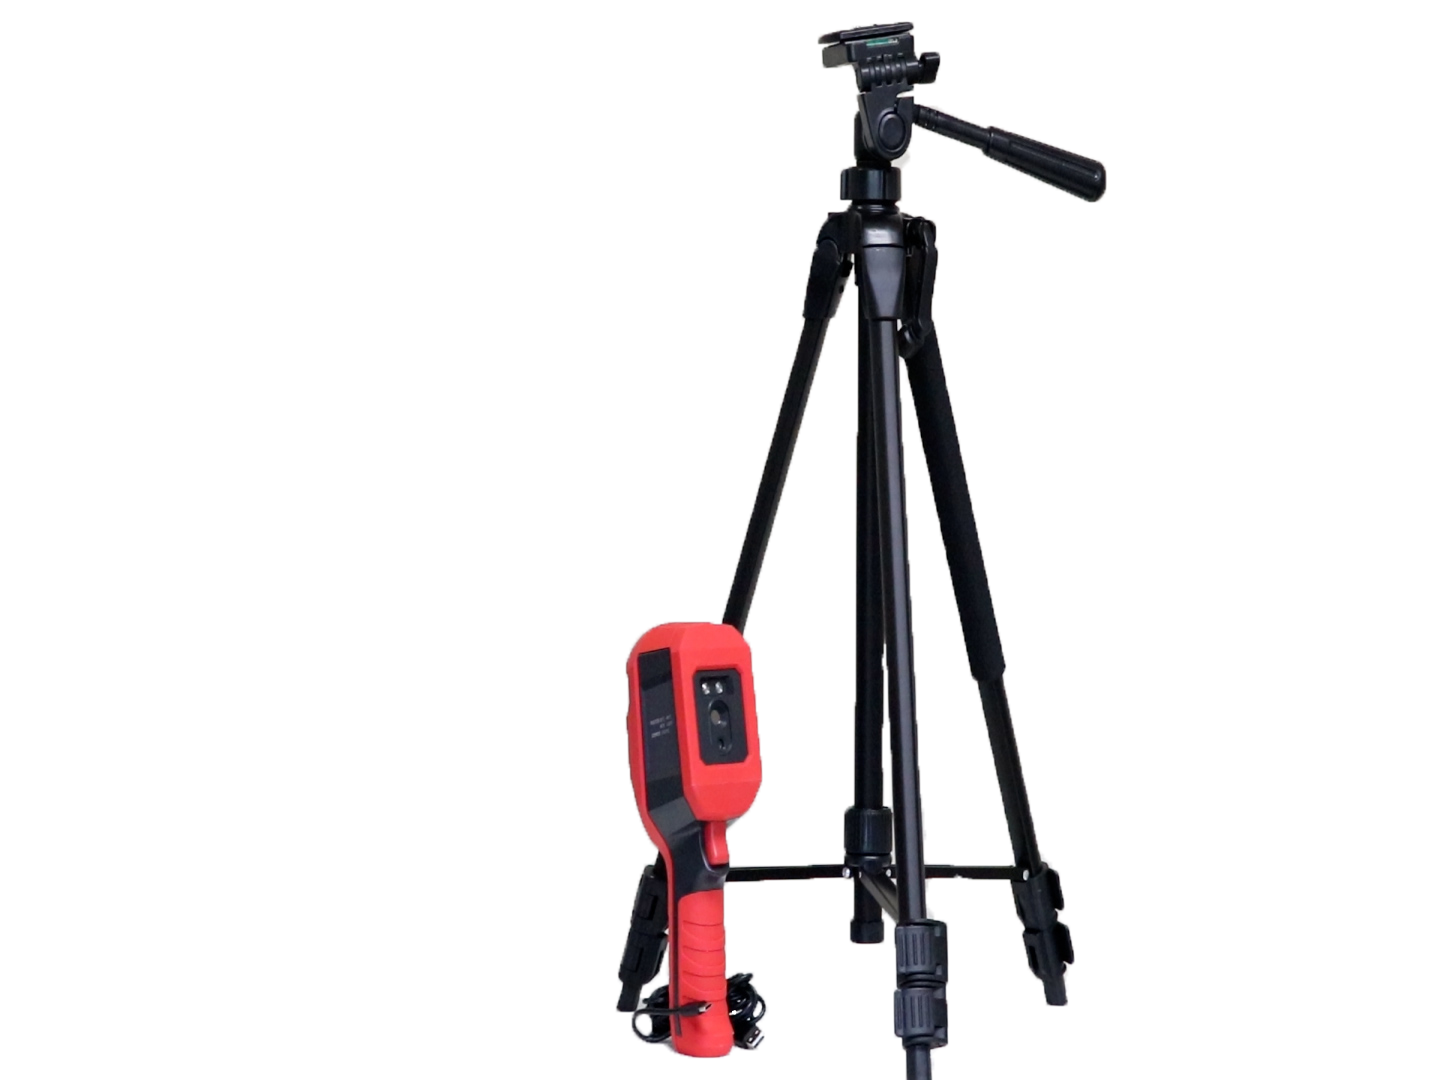 Package-2 (Thermal Imager with Tripod Stand)